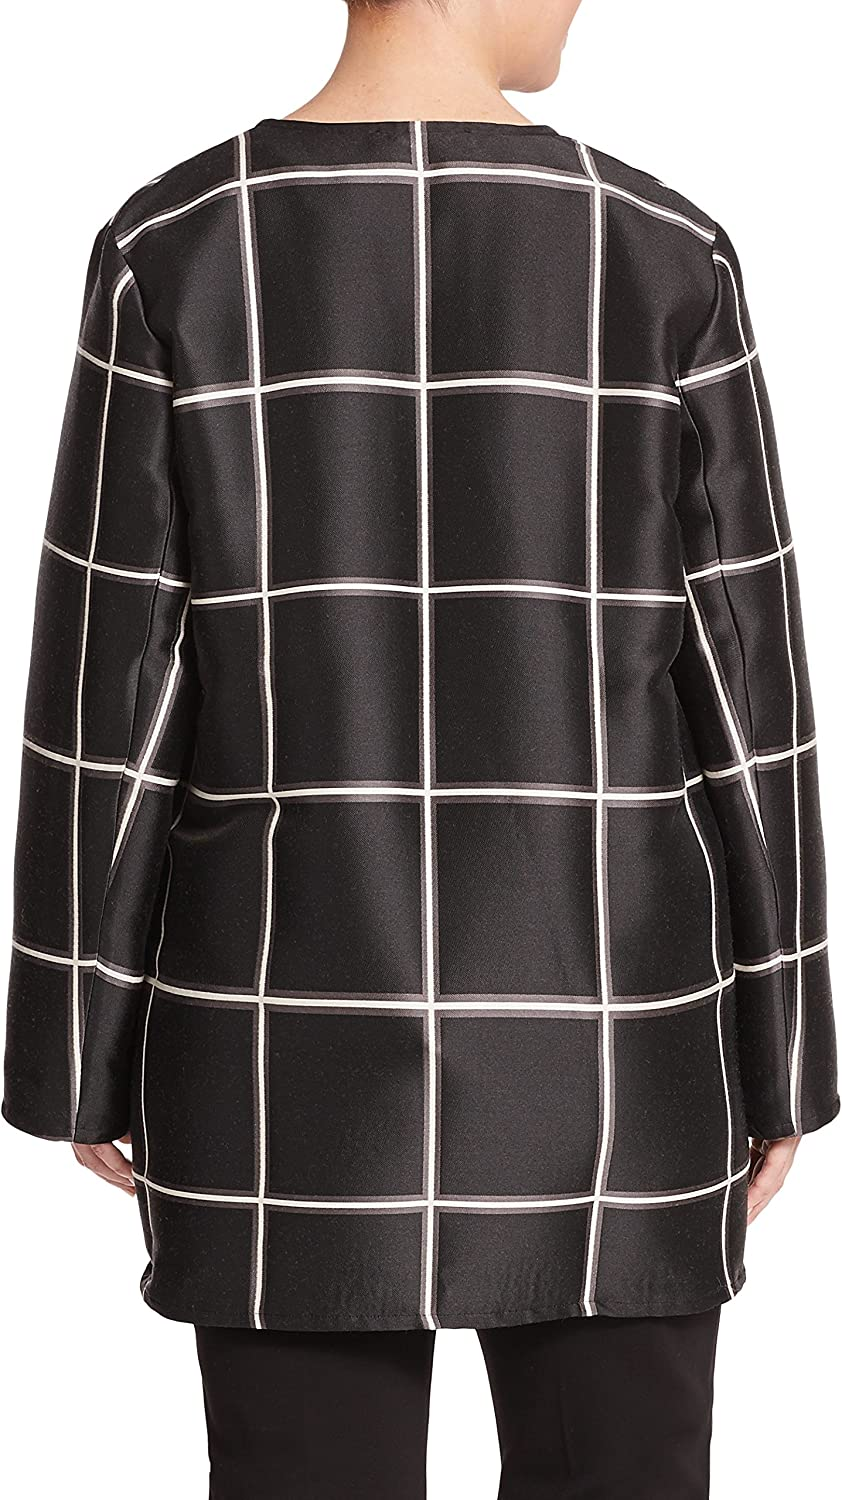 Marina Rinaldi Womens Famoso Check Duster Jacket